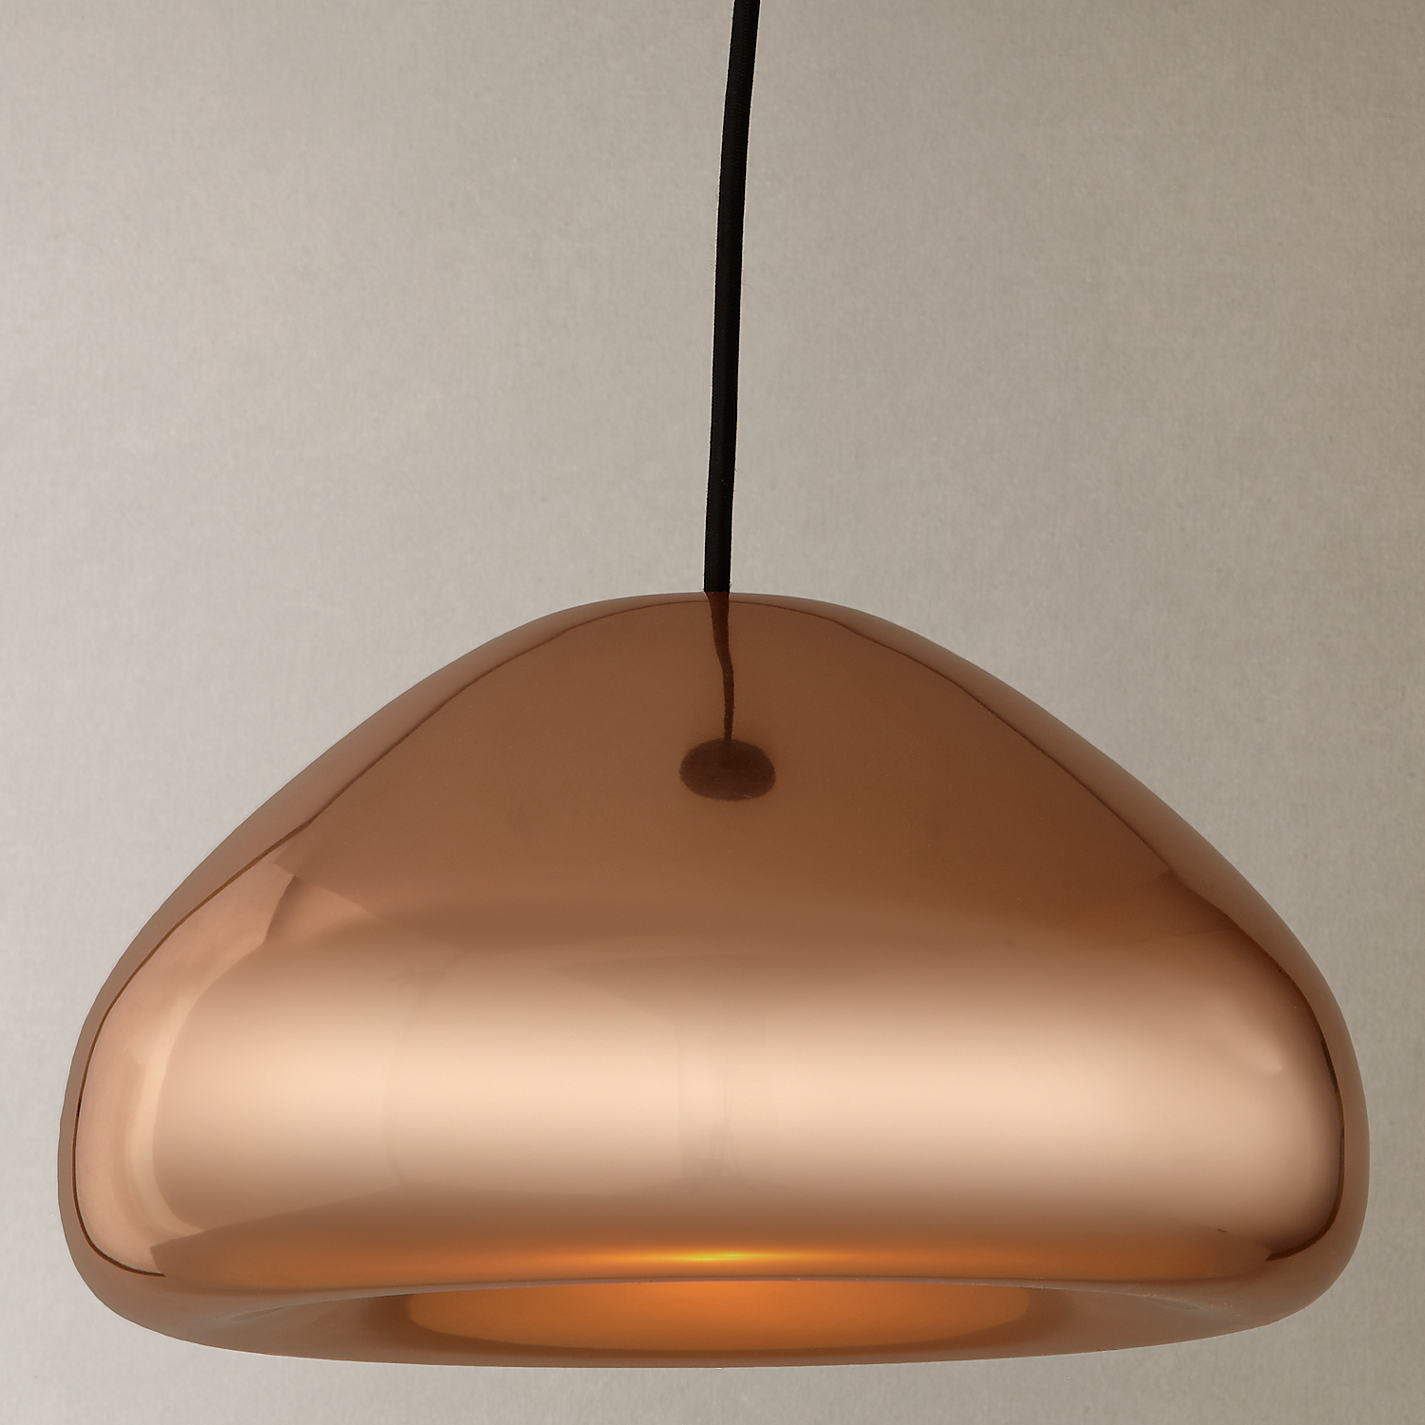 Buy tom dixon void pendant light john lewis buy tom dixon void pendant light online at johnlewis aloadofball Images